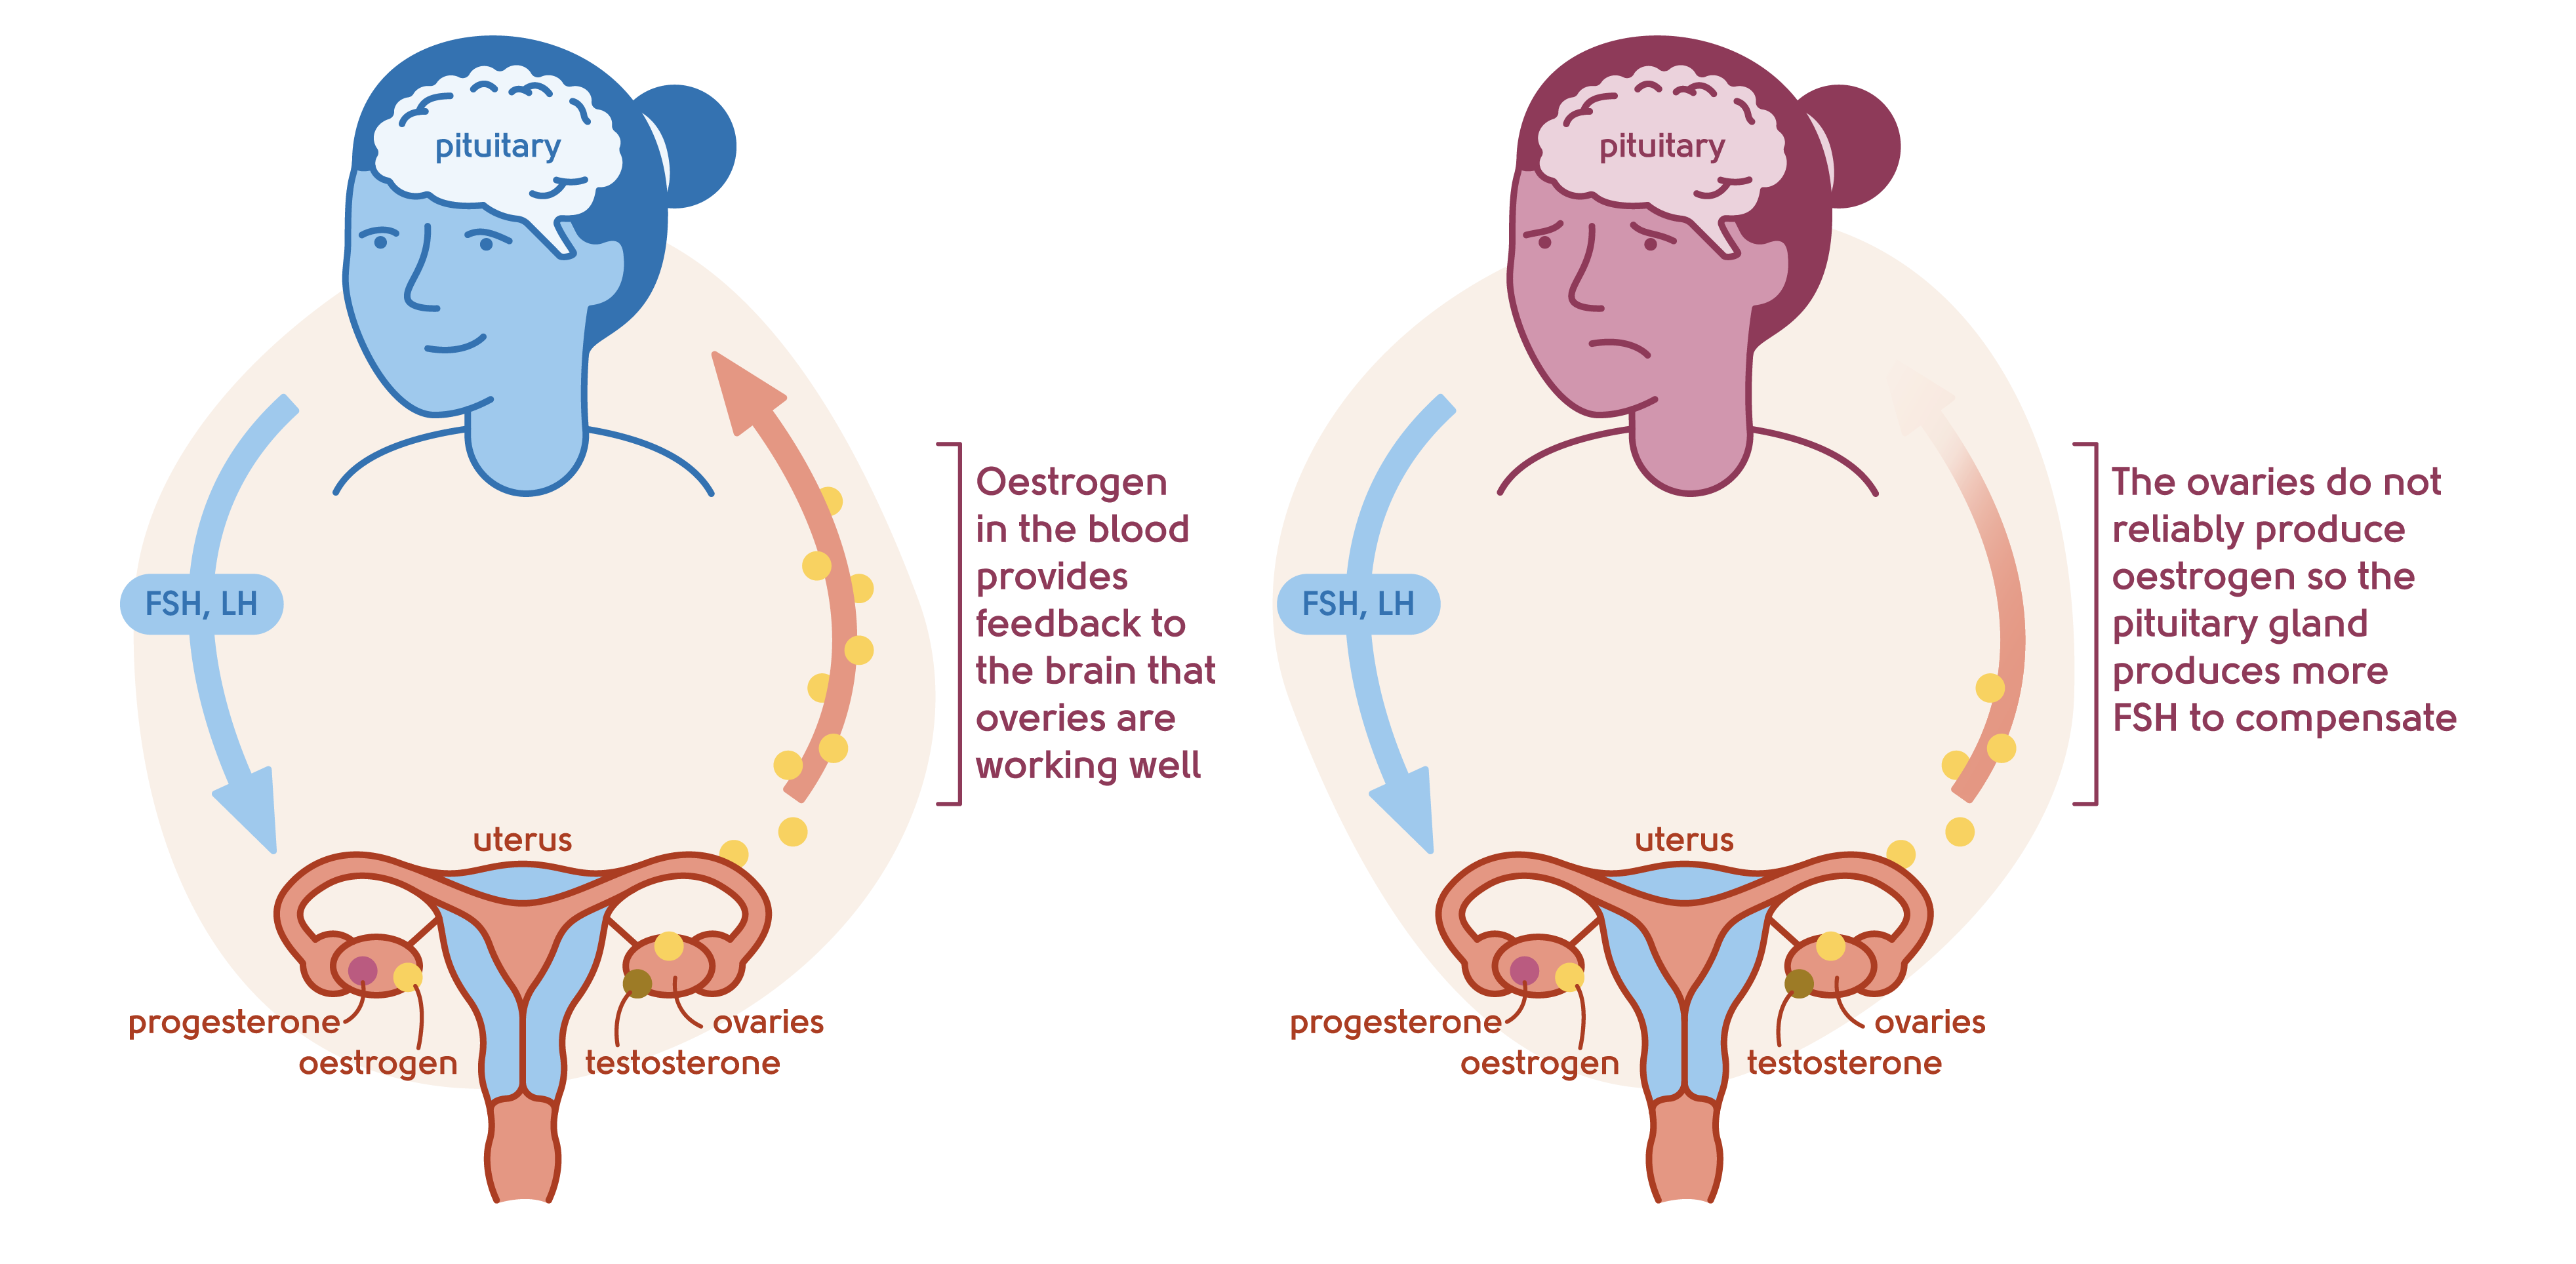 Illustration to show the feedback mechanism of the ovaries and the brain